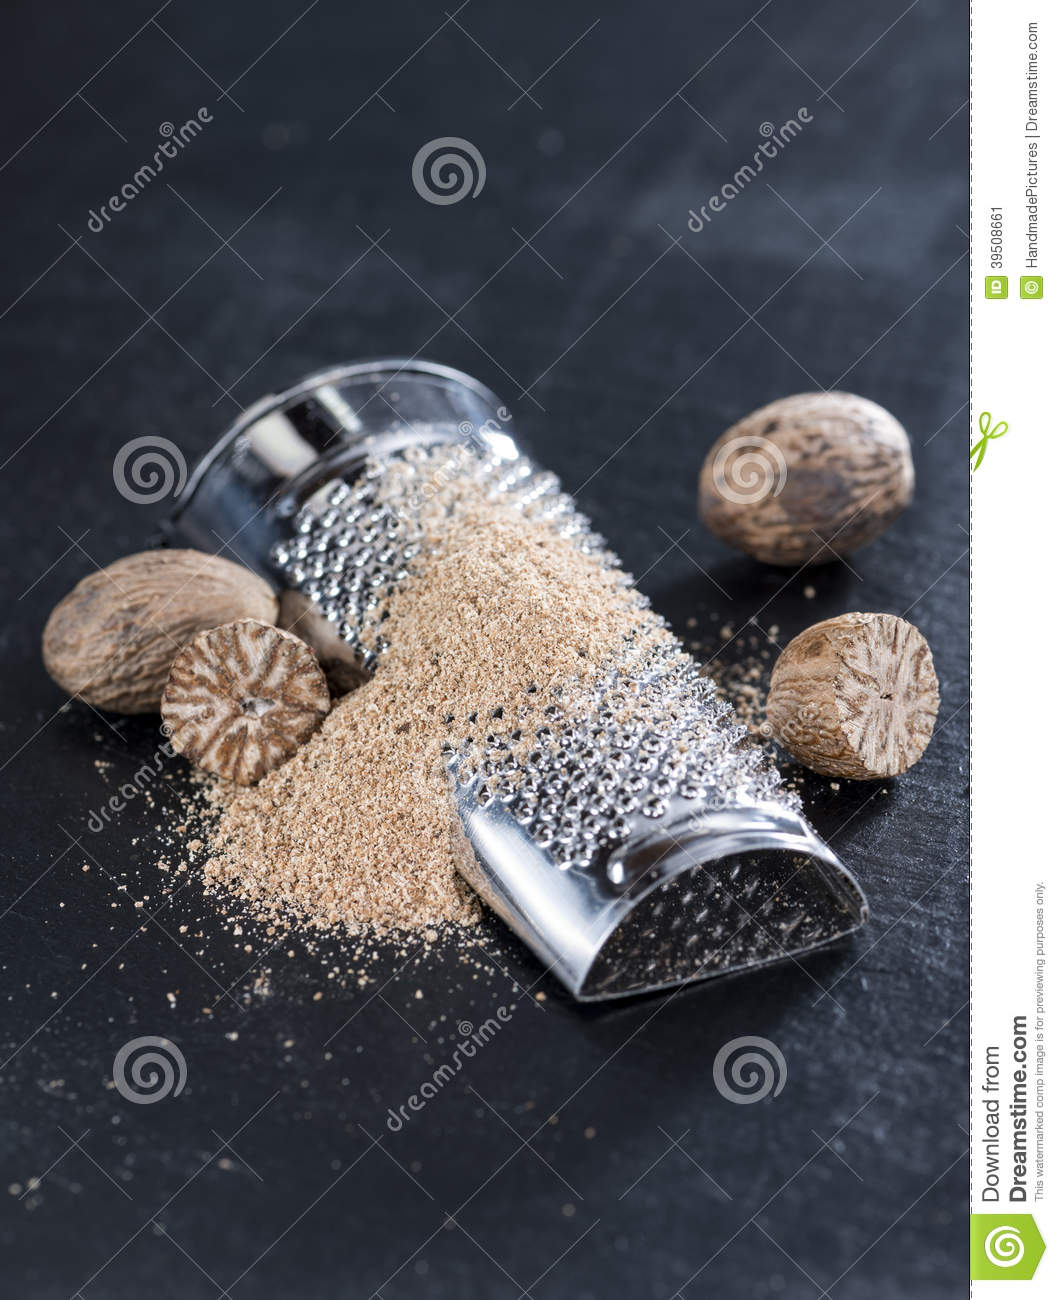 Grated Nutmegs